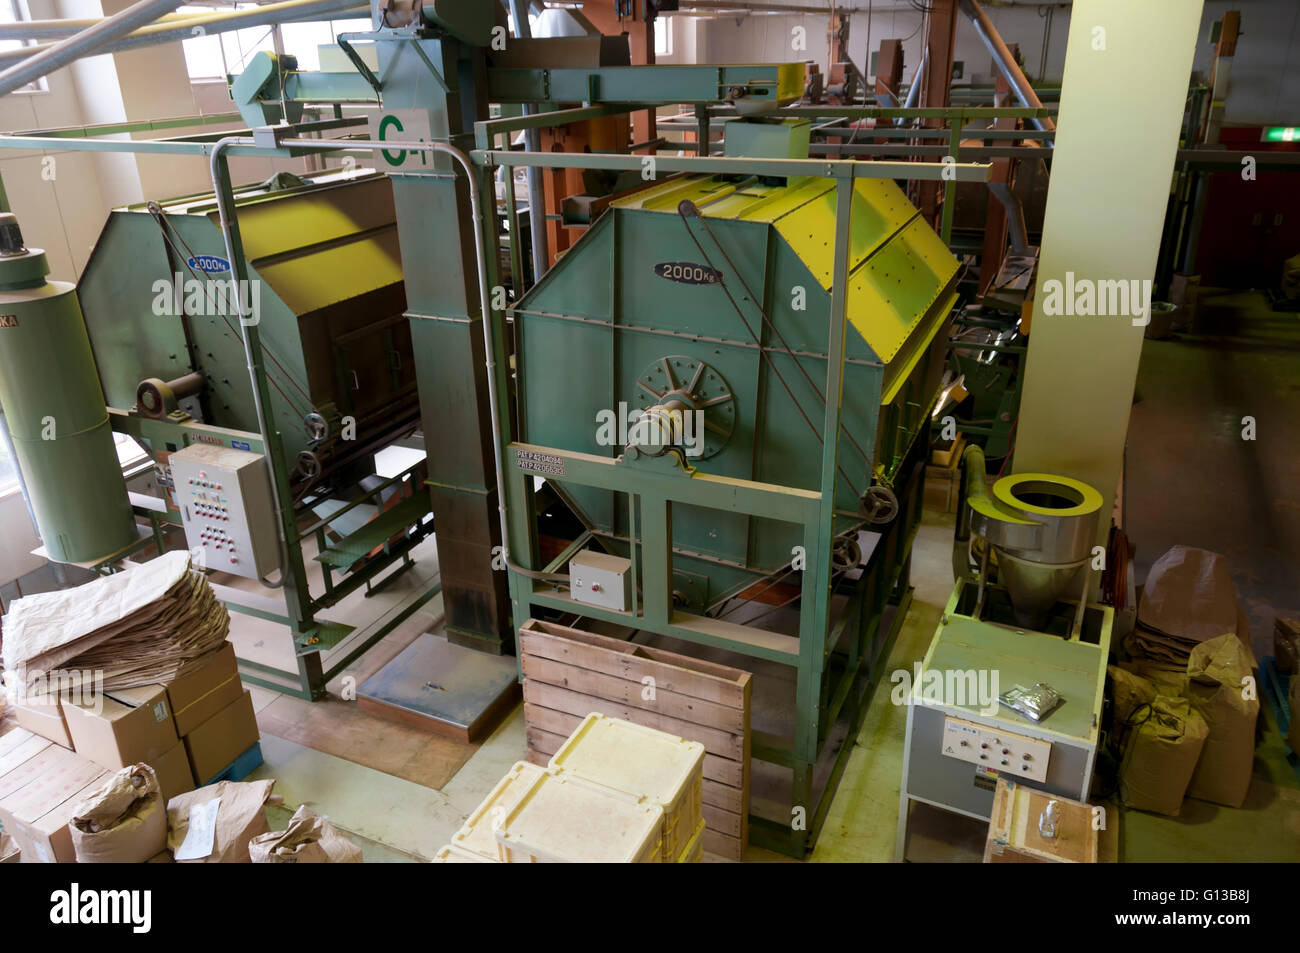 The industry for processing green tea, Shizuoka, Japan - Stock Image